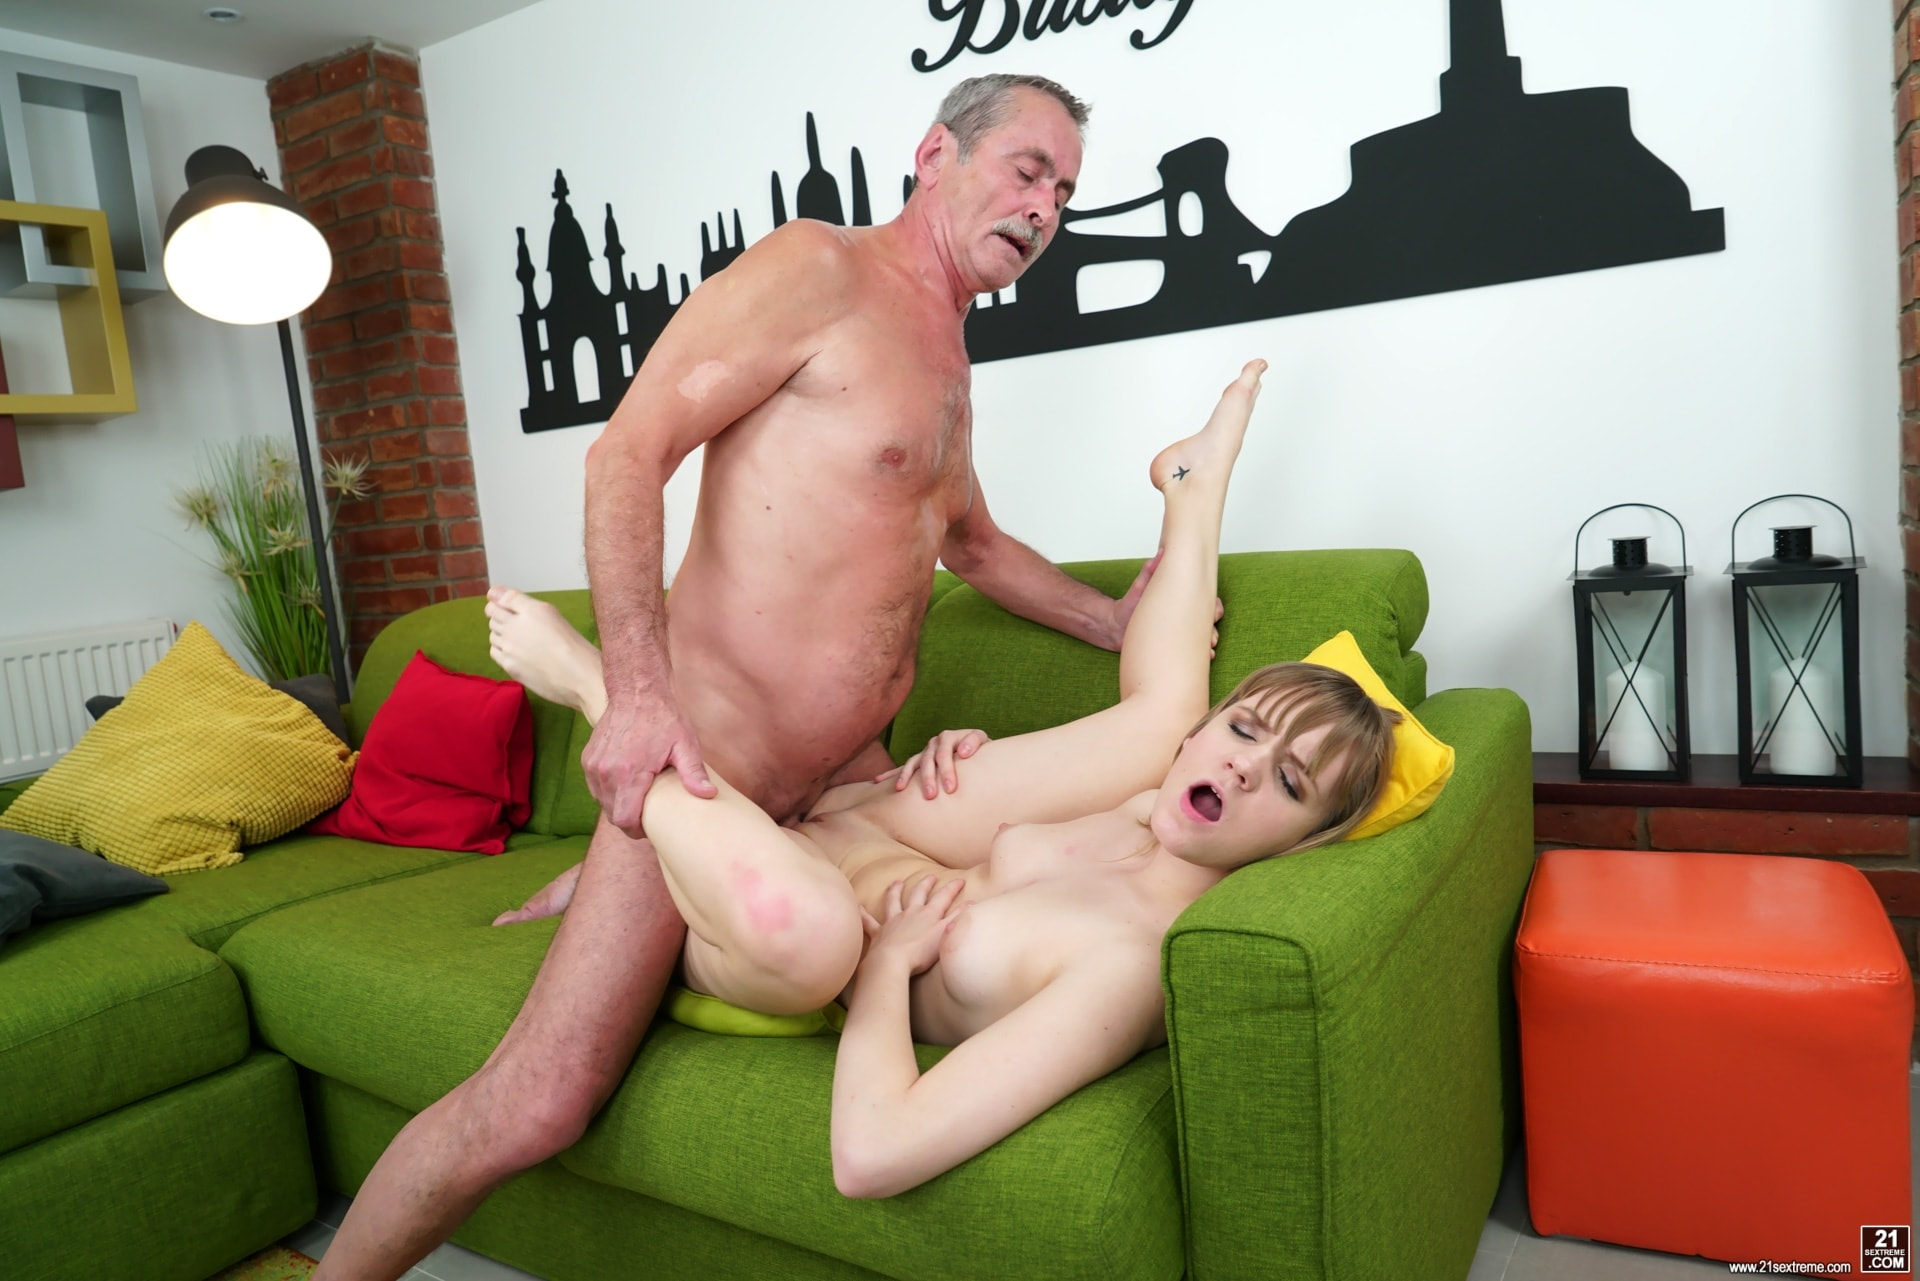 21Sextury 'Sexual Wisdom' starring Lucette Nice (Photo 182)